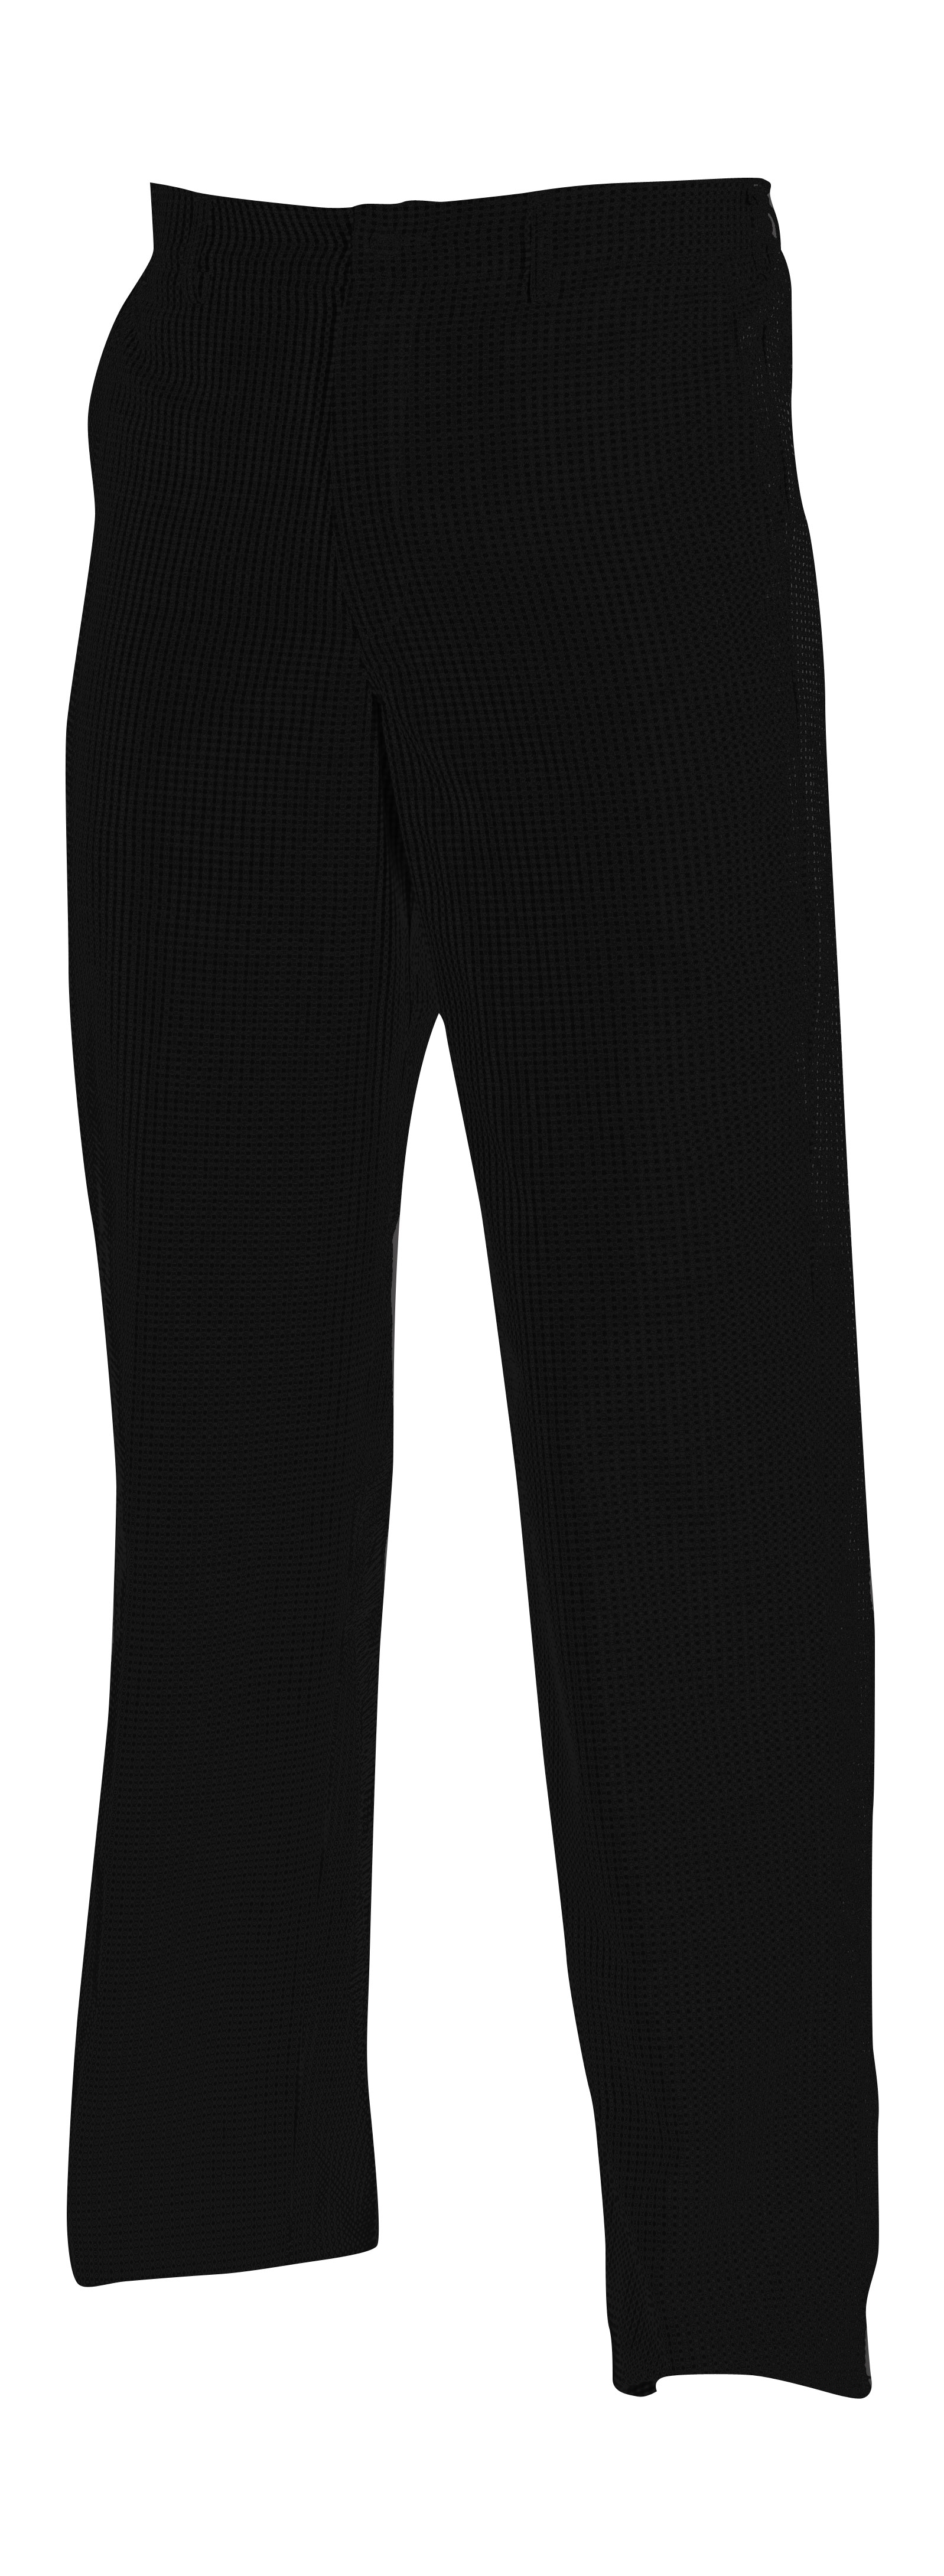 CHEF UNIFORM - TROUSERS BLACK ZIP - MEDIUM